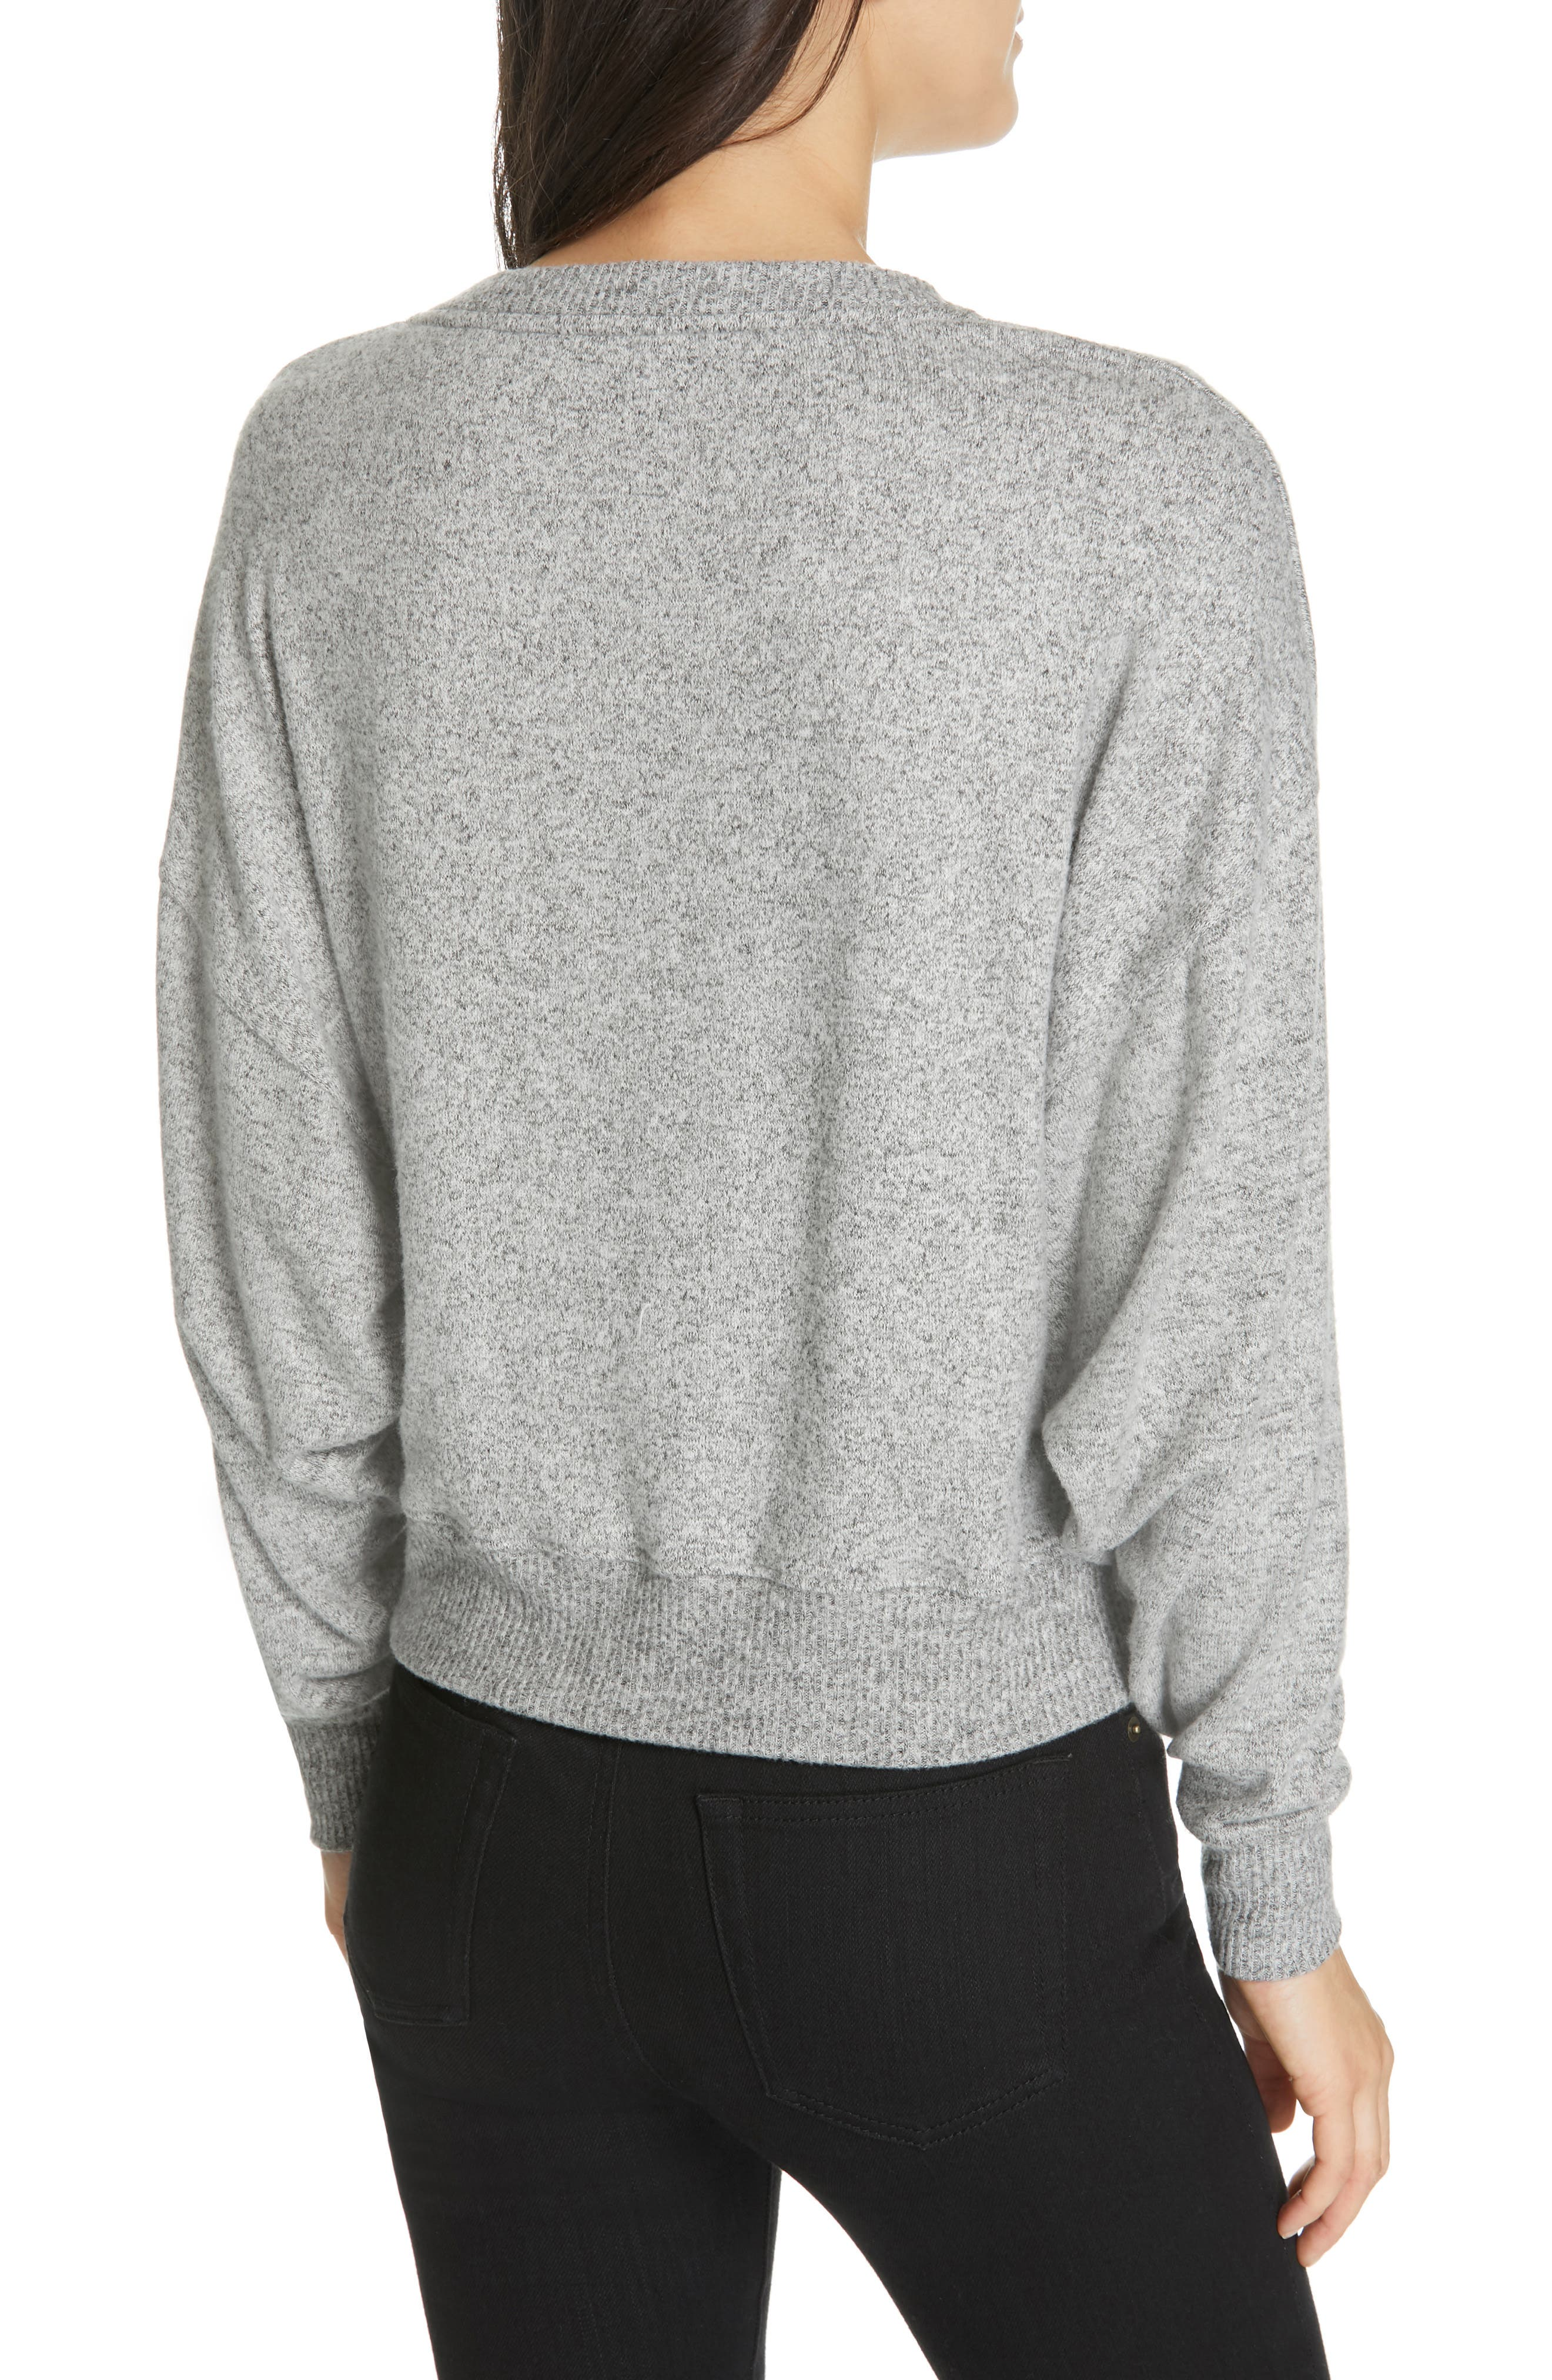 Yerrick Sweater,                             Alternate thumbnail 2, color,                             HEATHER GREY